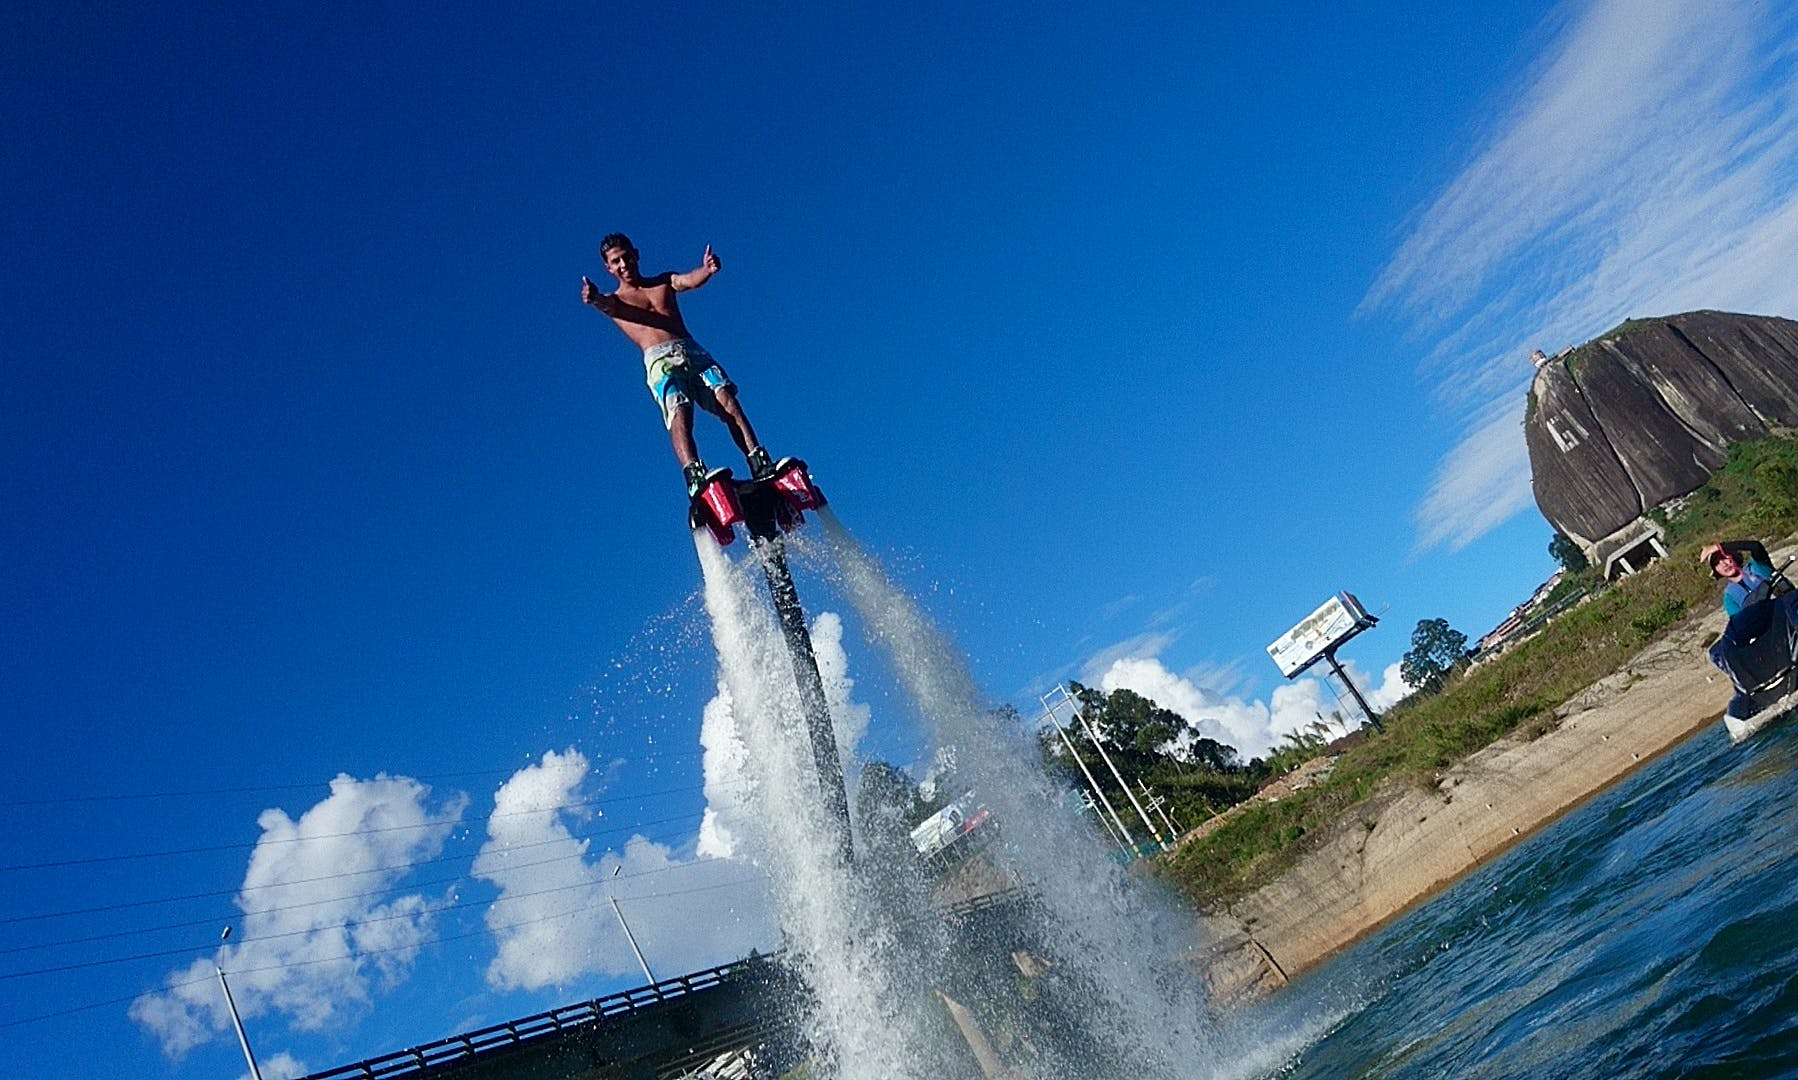 Experiences the thrill of Flyboarding in Antioquia, Colombia